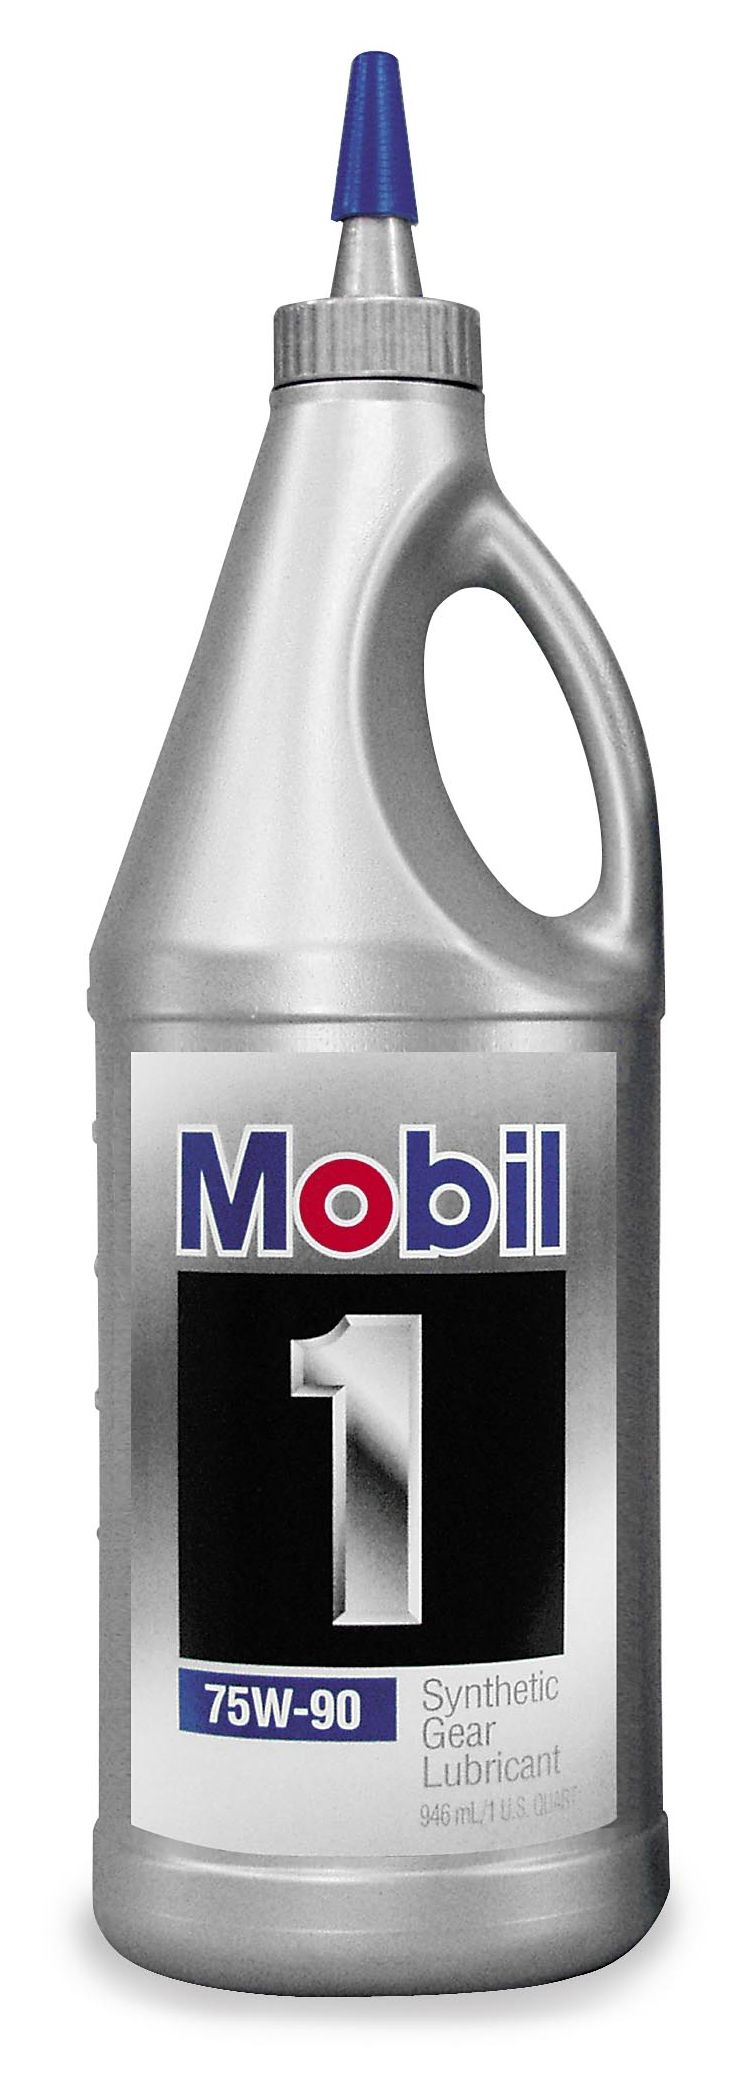 mobil 1 synthetic gear lubricant revzilla. Black Bedroom Furniture Sets. Home Design Ideas